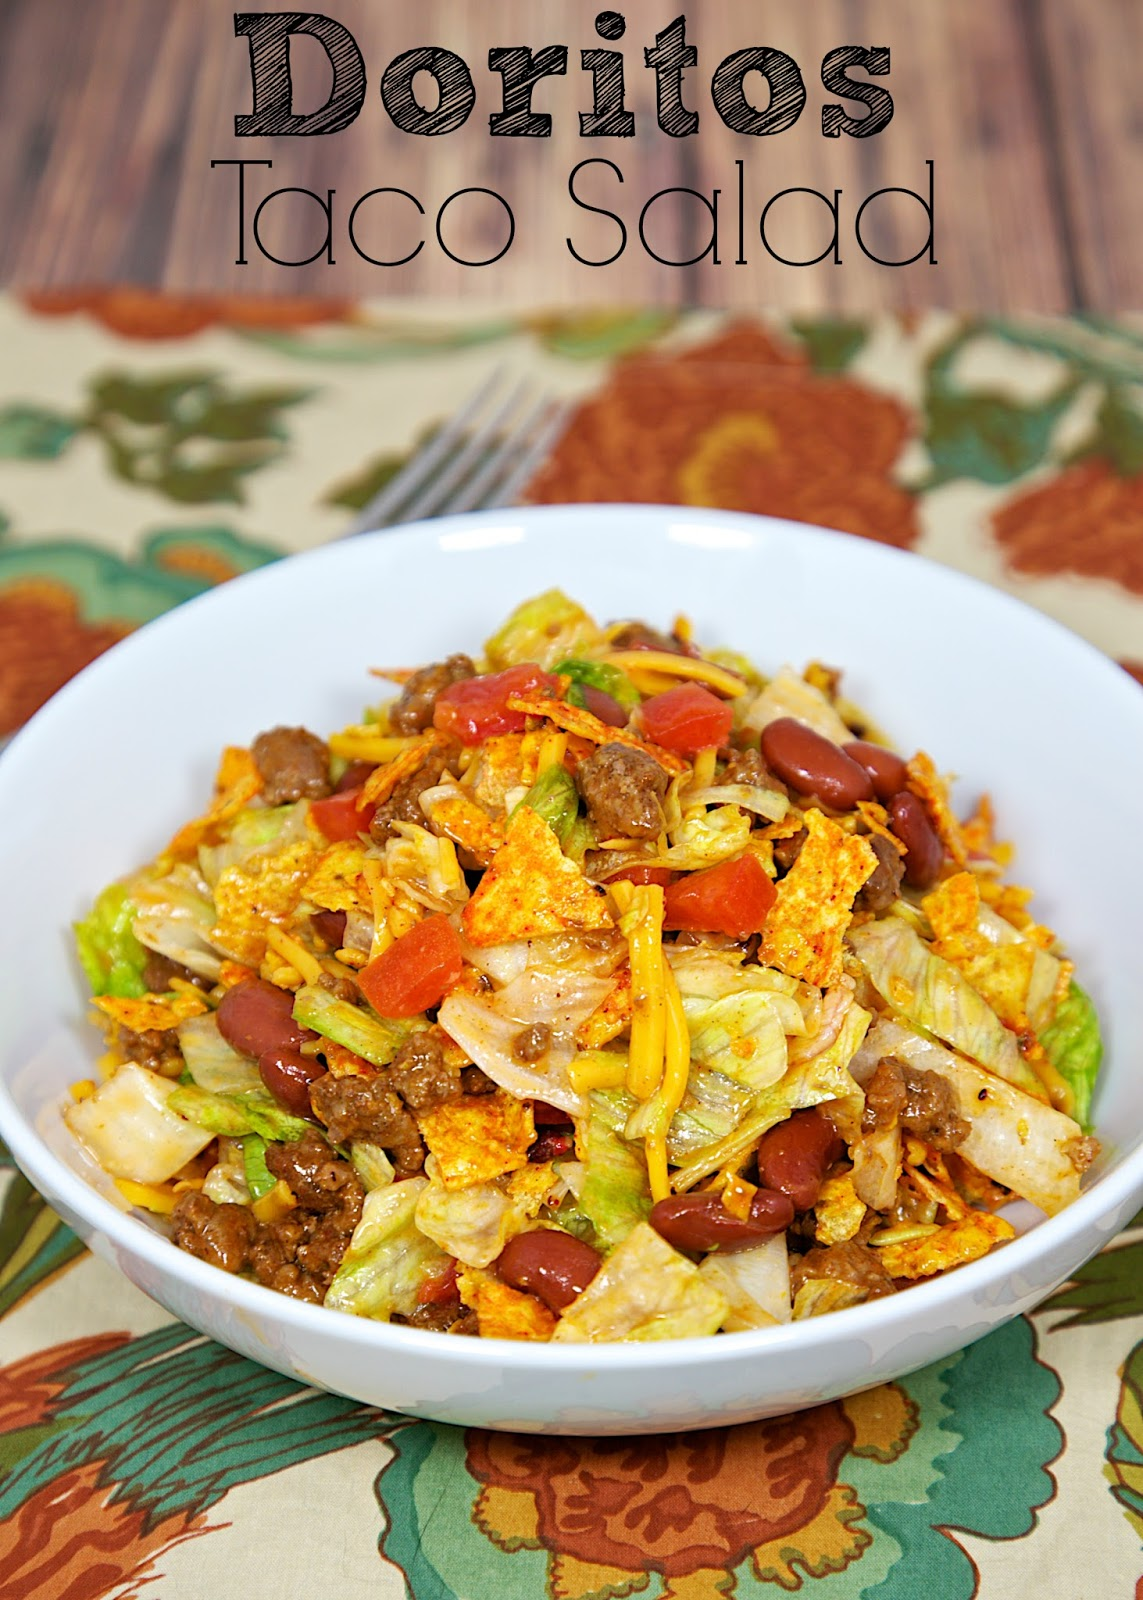 Doritos Taco Salad - taco meat, kidney beans, tomatoes, lettuce, Catalina dressing, cheese and Doritos. Quick Mexican recipe. Kid-friendly - who wouldn't want to eat Doritos for dinner?!